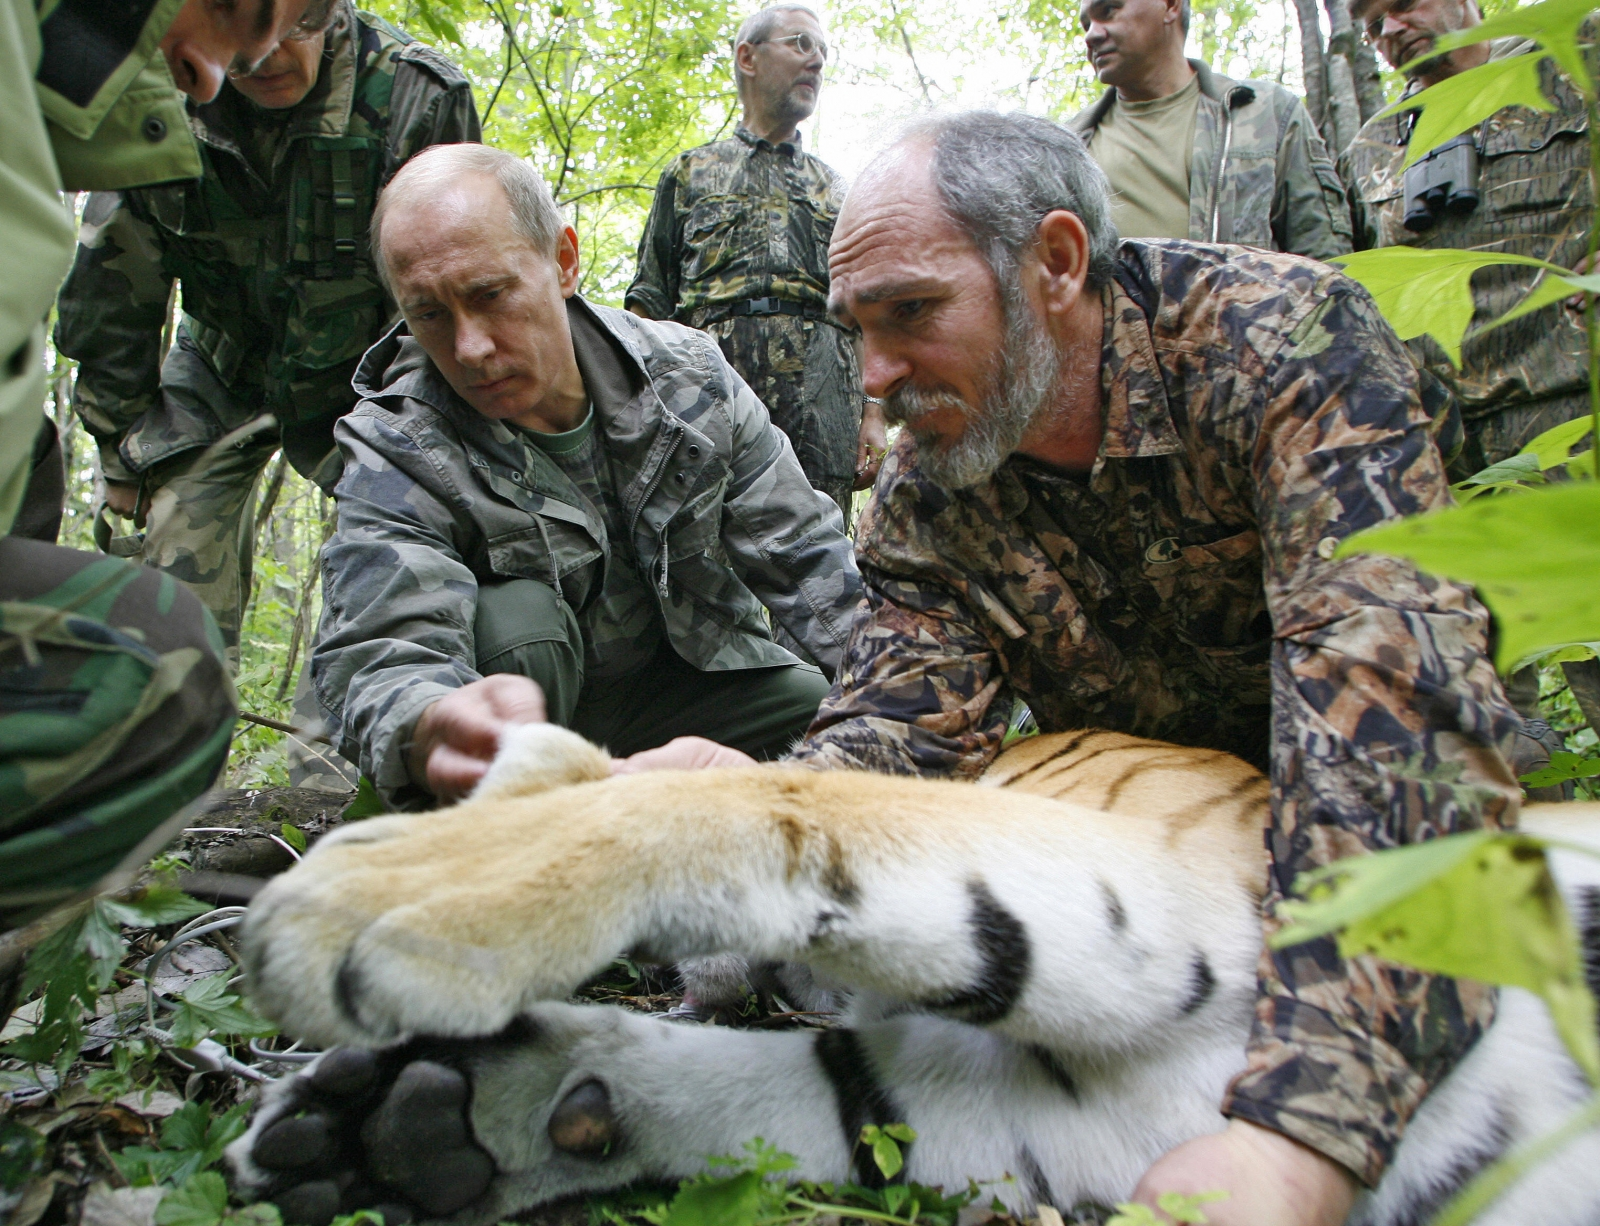 Russian Prime Minister Vladimir Putin (L), assisted by Russian scientist scientist Vyacheslav Razhanov, fixes a GPS-Argos satellite transmitter onto a tiger during his visit to the Ussuriysky forest reserve of the Russian Academy of Sciences in the Far Ea